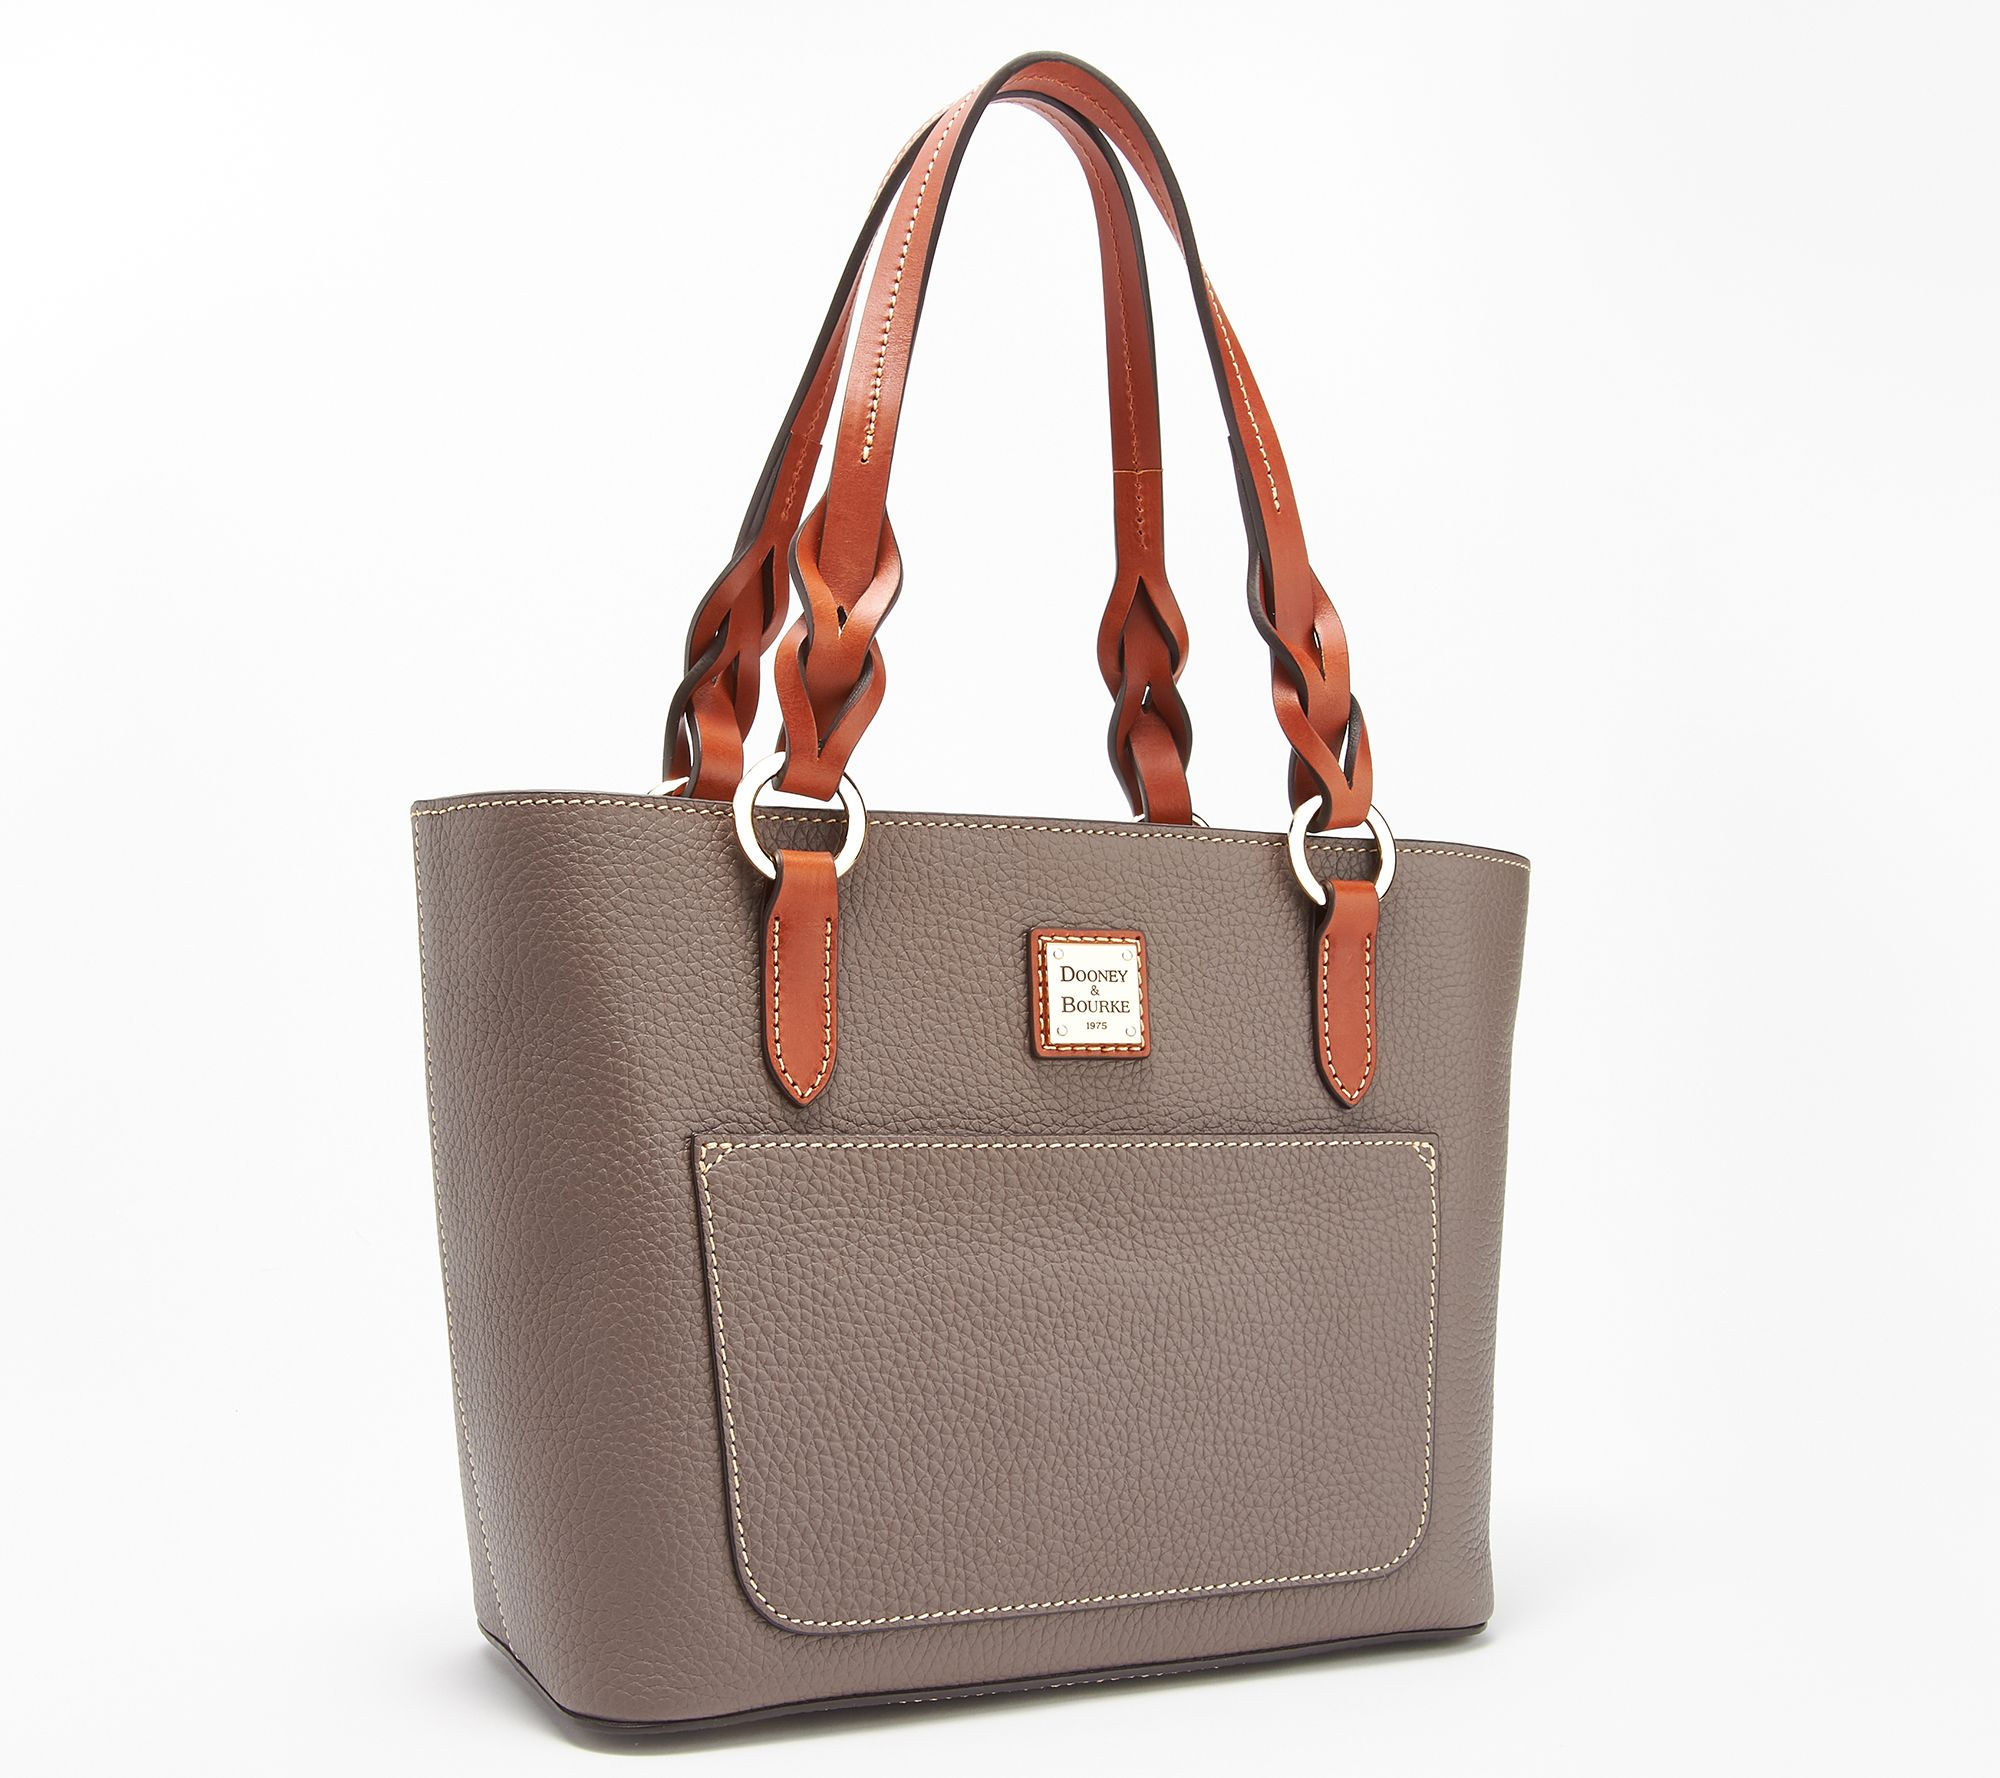 6e95c2378 Dooney & Bourke Pebble Leather Small Tammy Tote - Page 1 — QVC.com